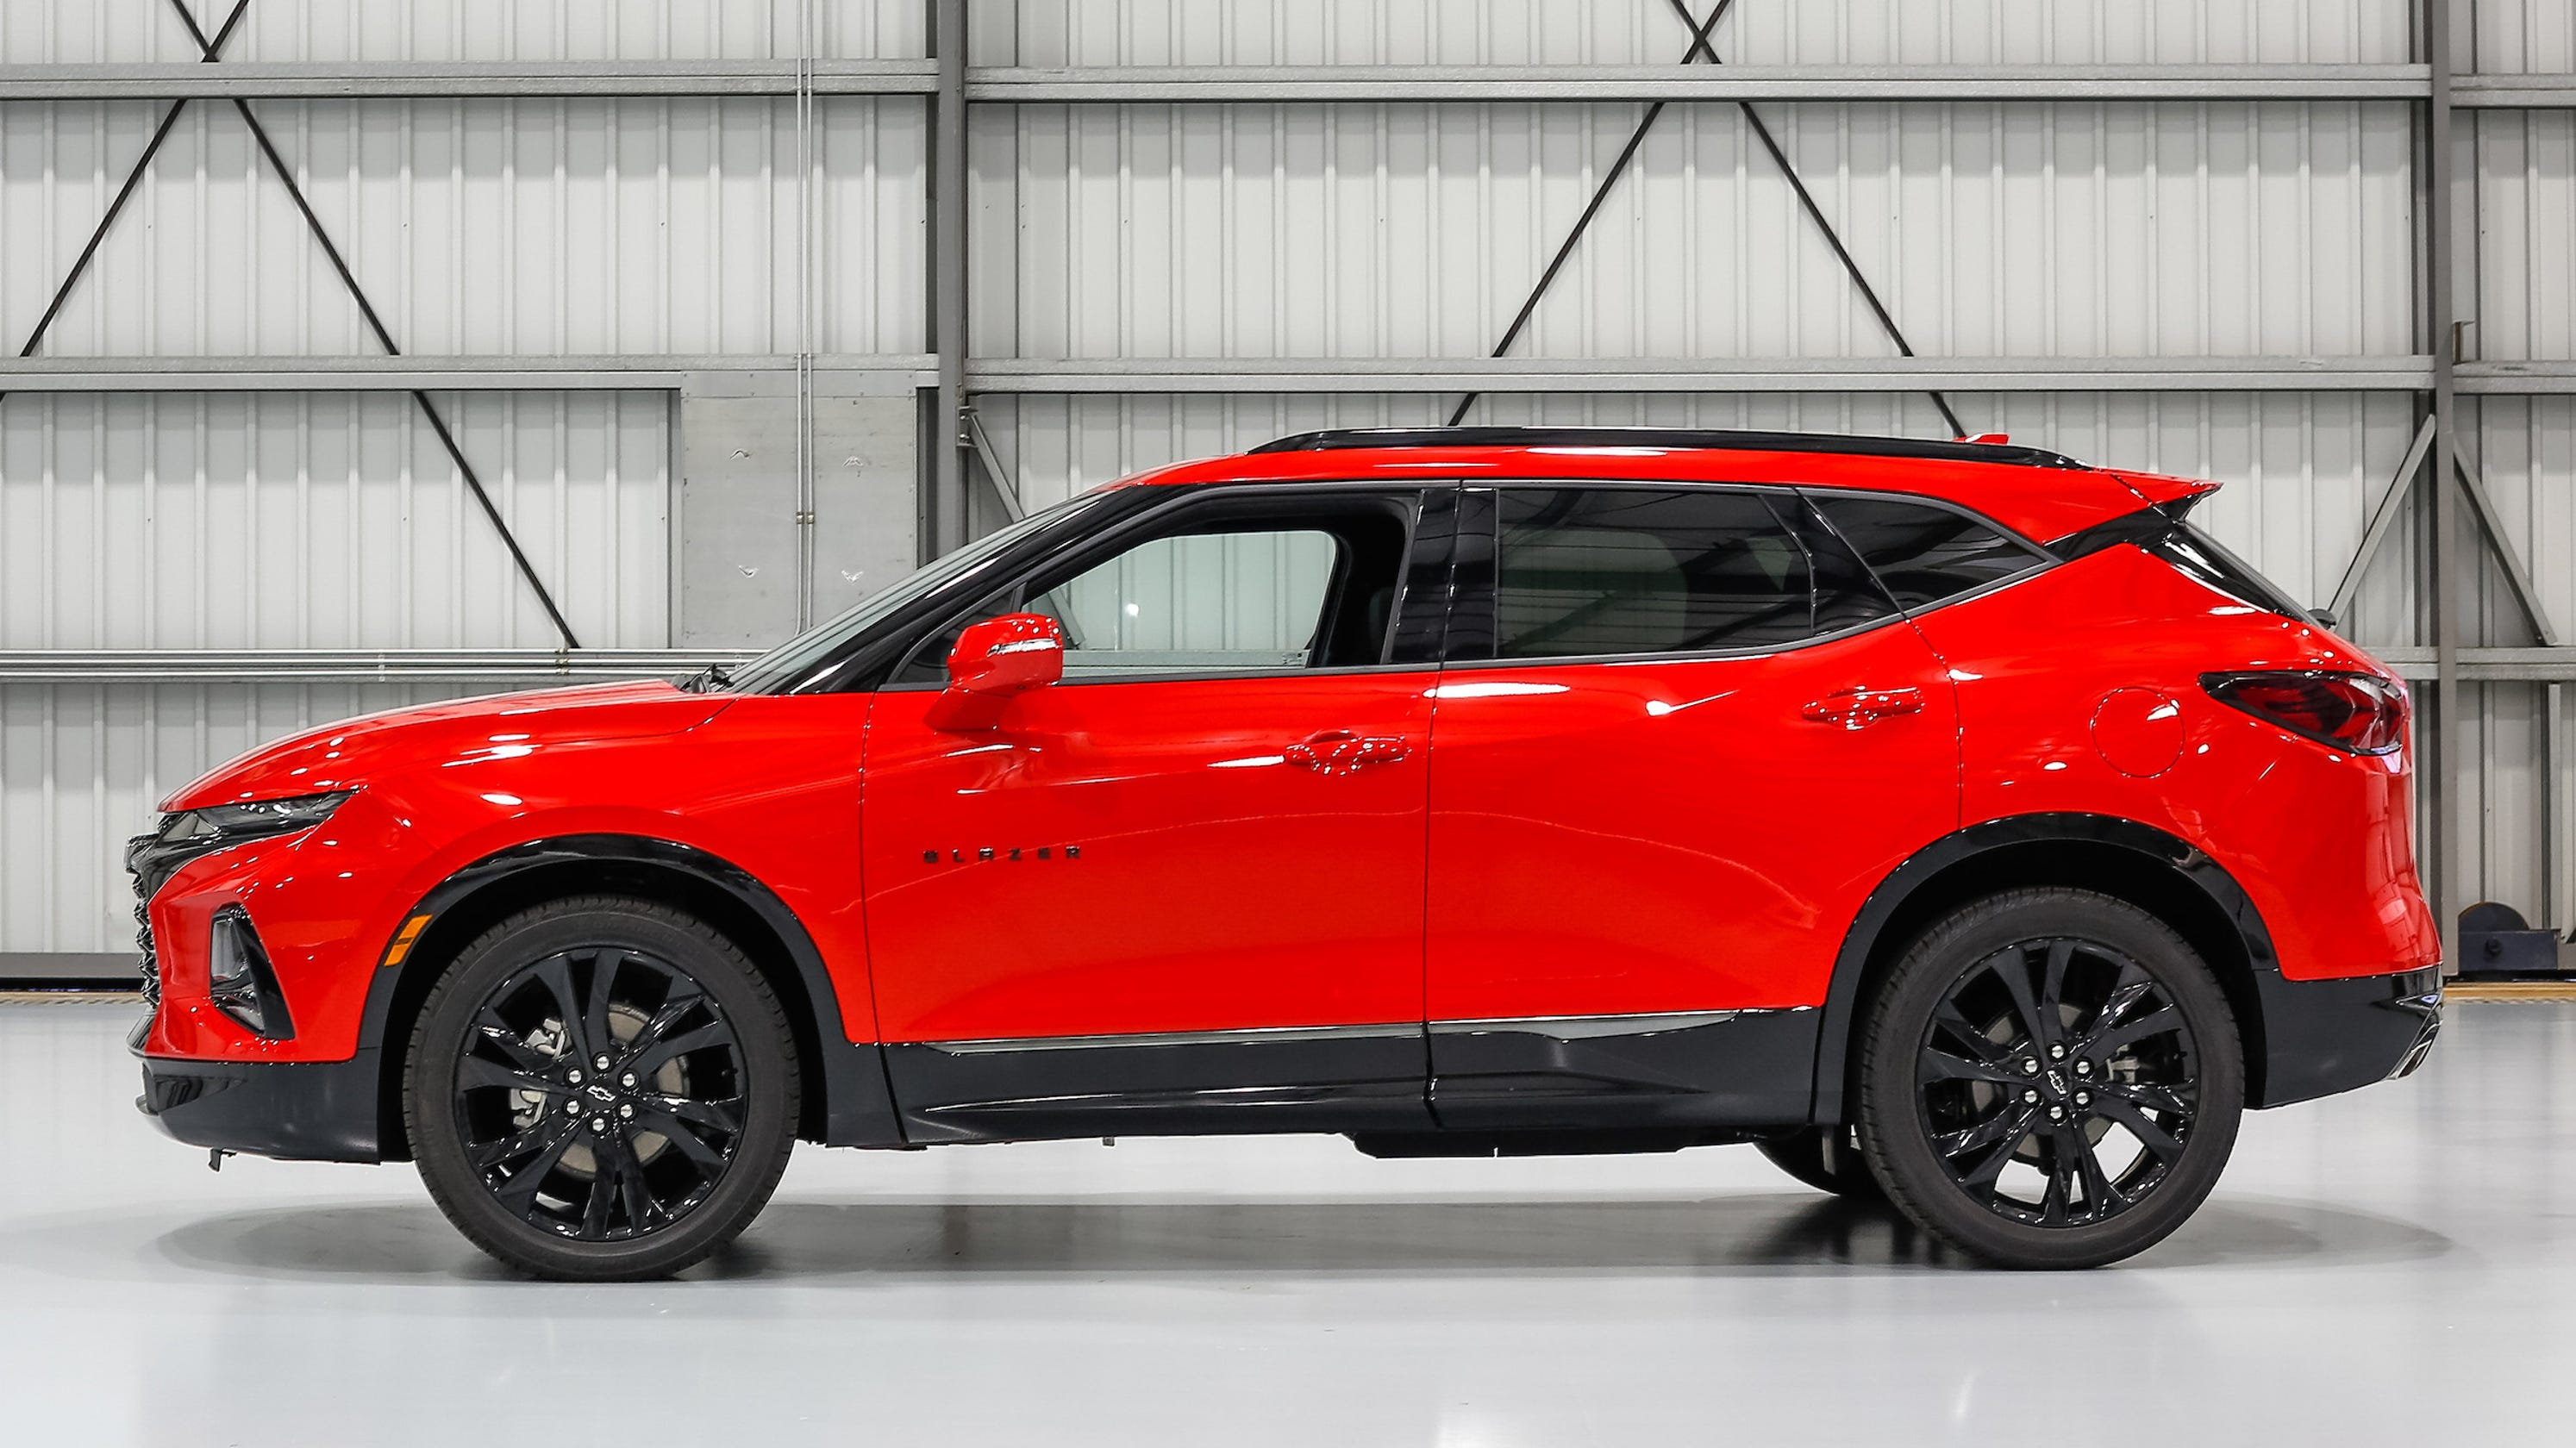 2019 Chevy Blazer Wins With Style Handling Features